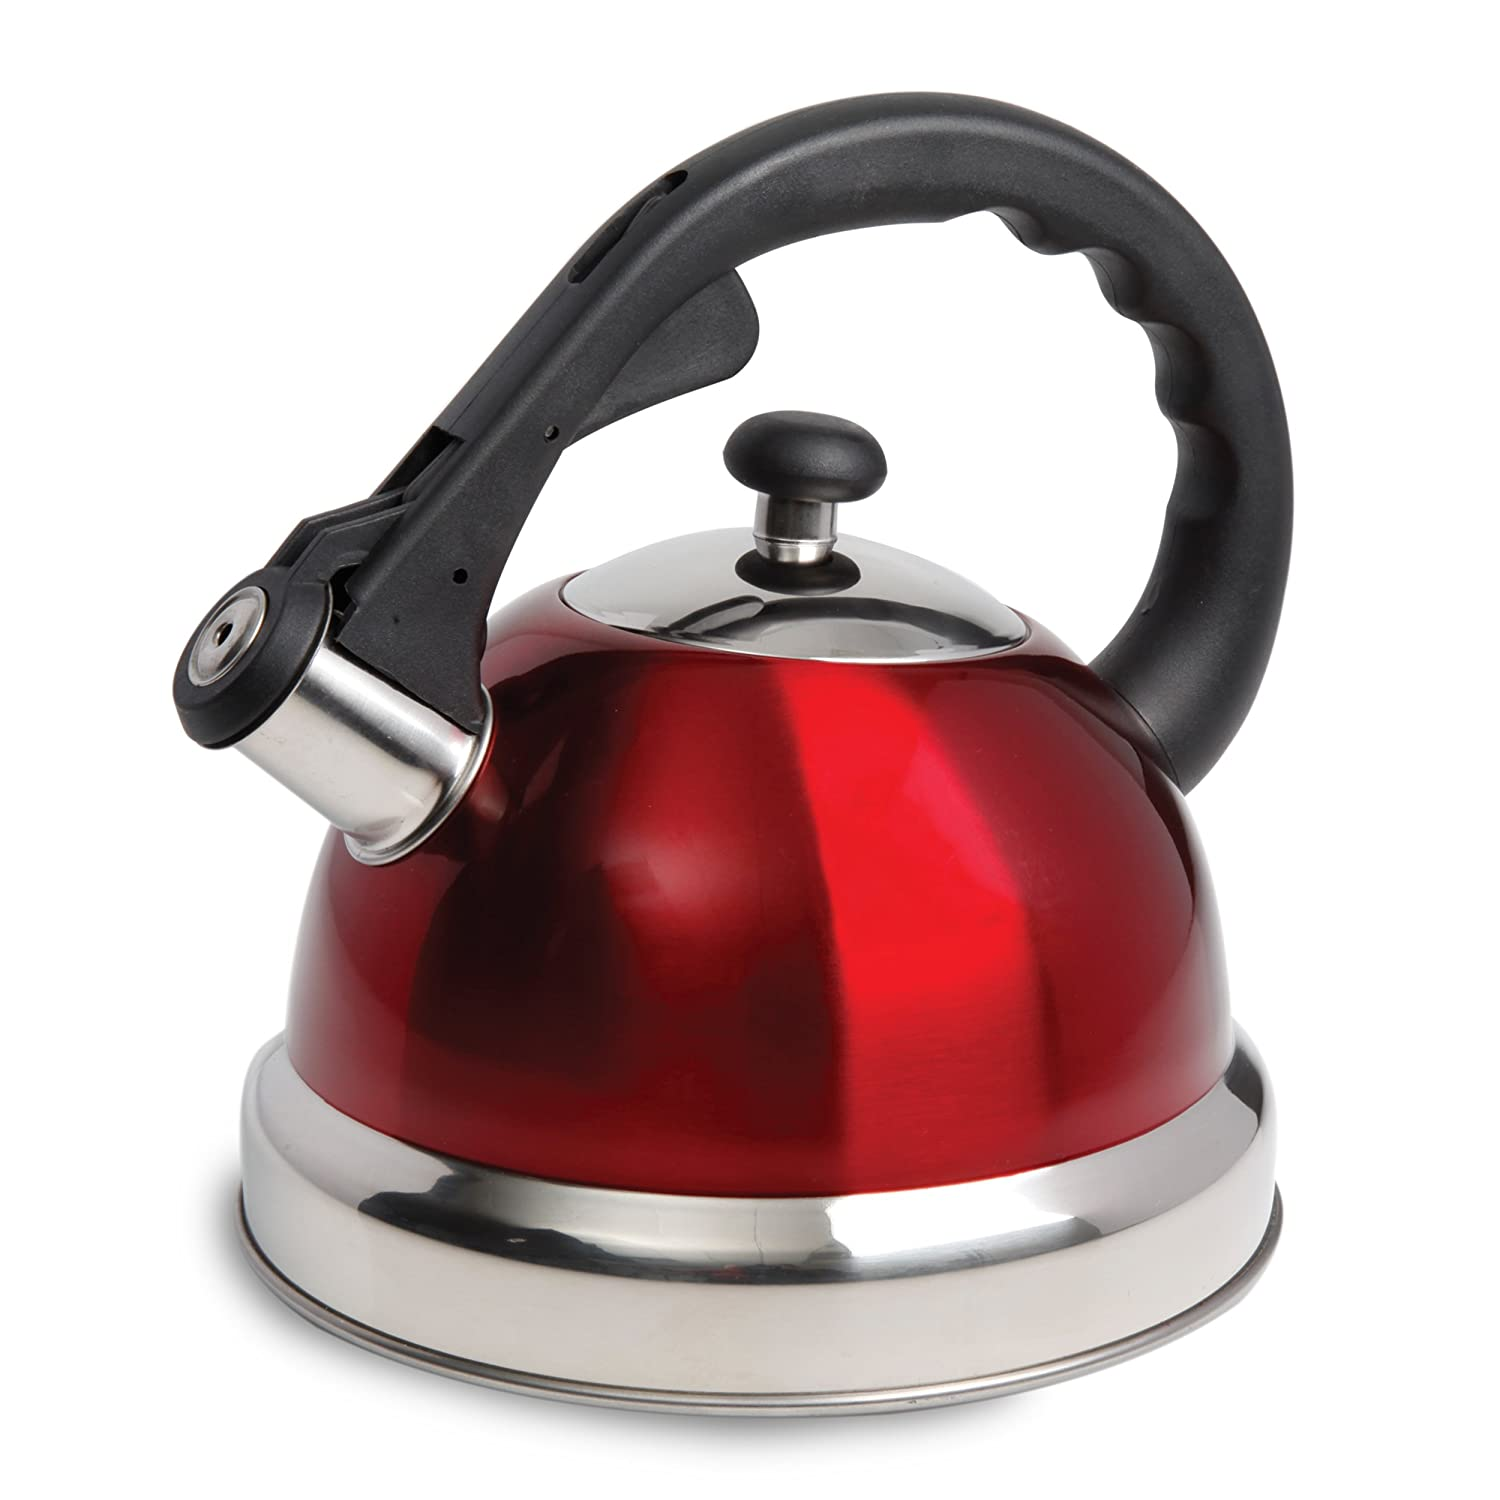 Mr. Coffee 108074.01 Claredale Stainless Steel Whistling Tea Kettle, 2.2-Quart, Red Mr Coffee